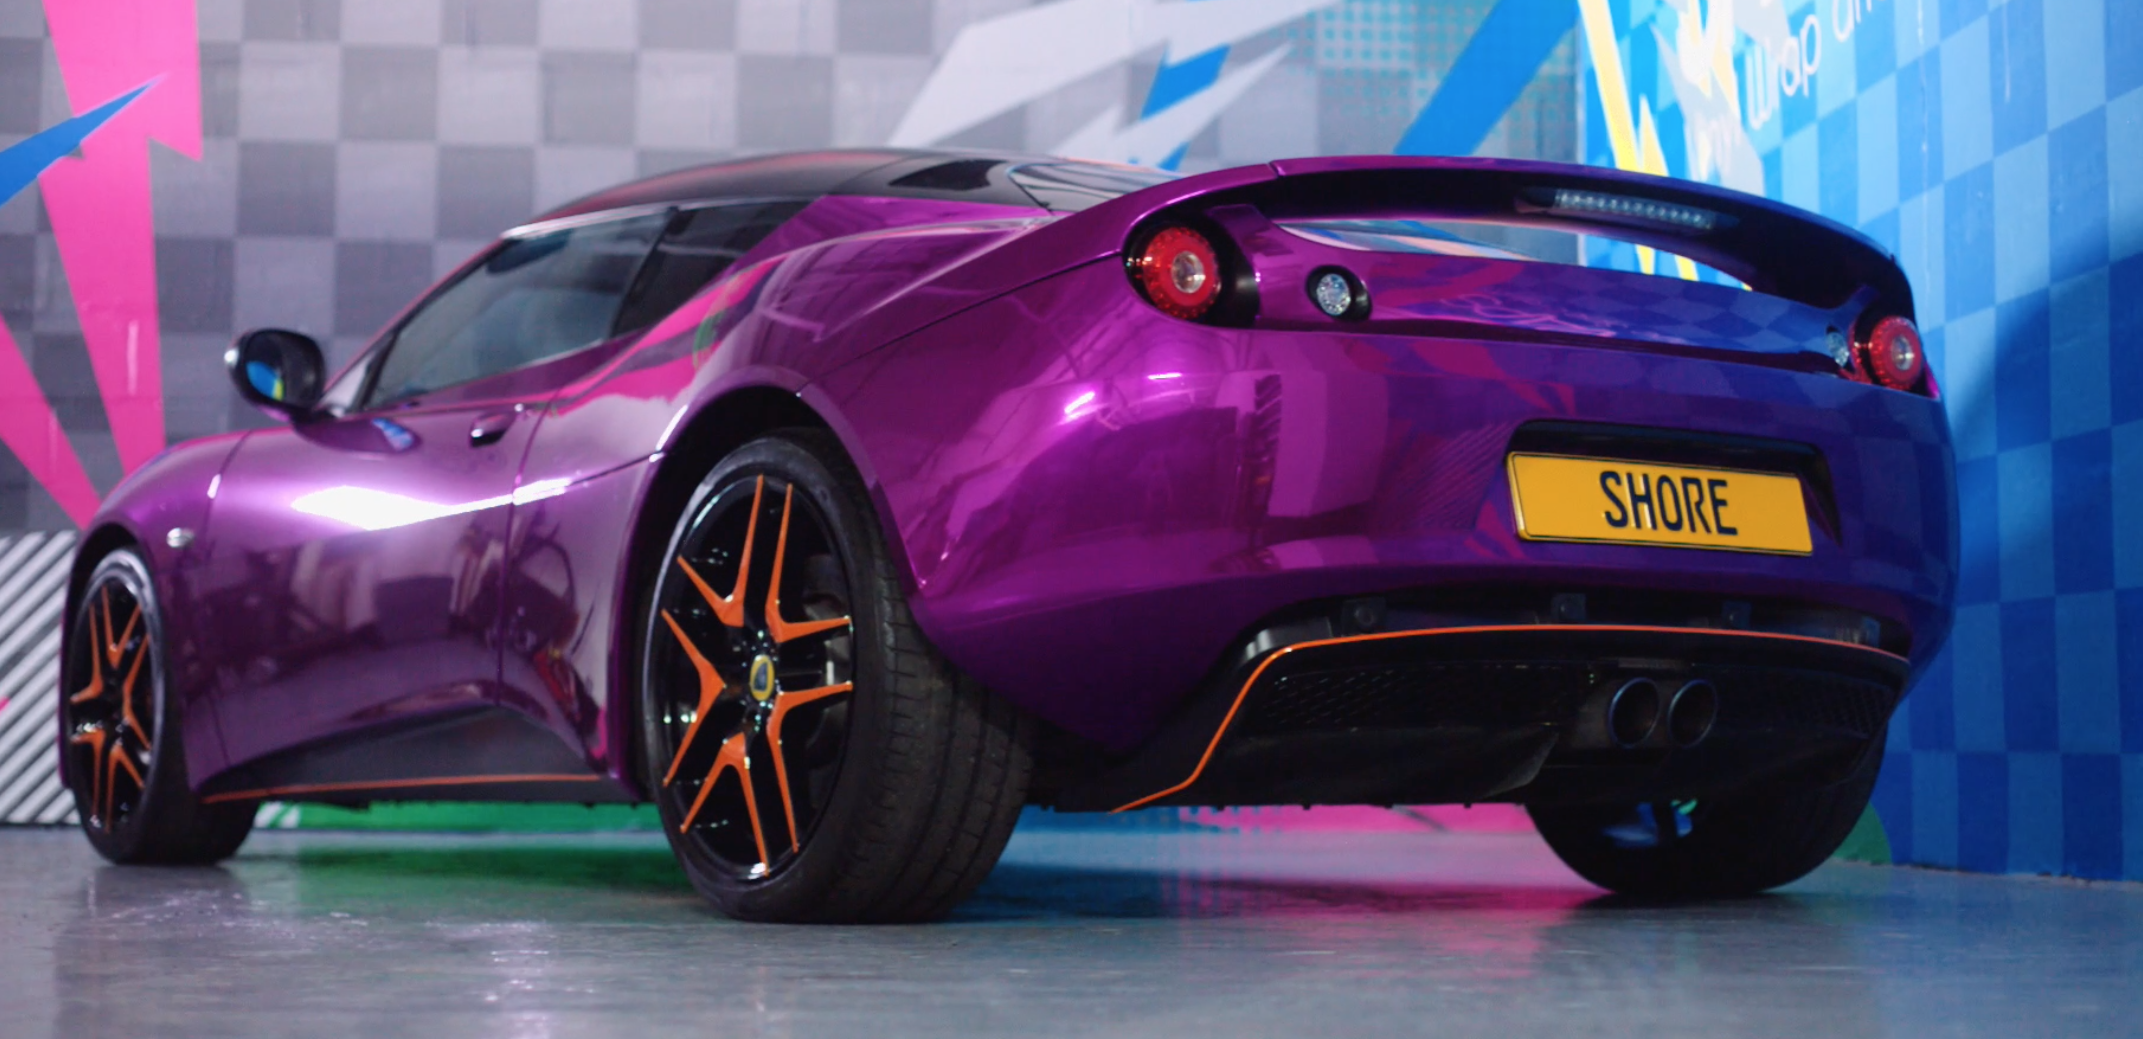 Lotus Evora Purple Chrome